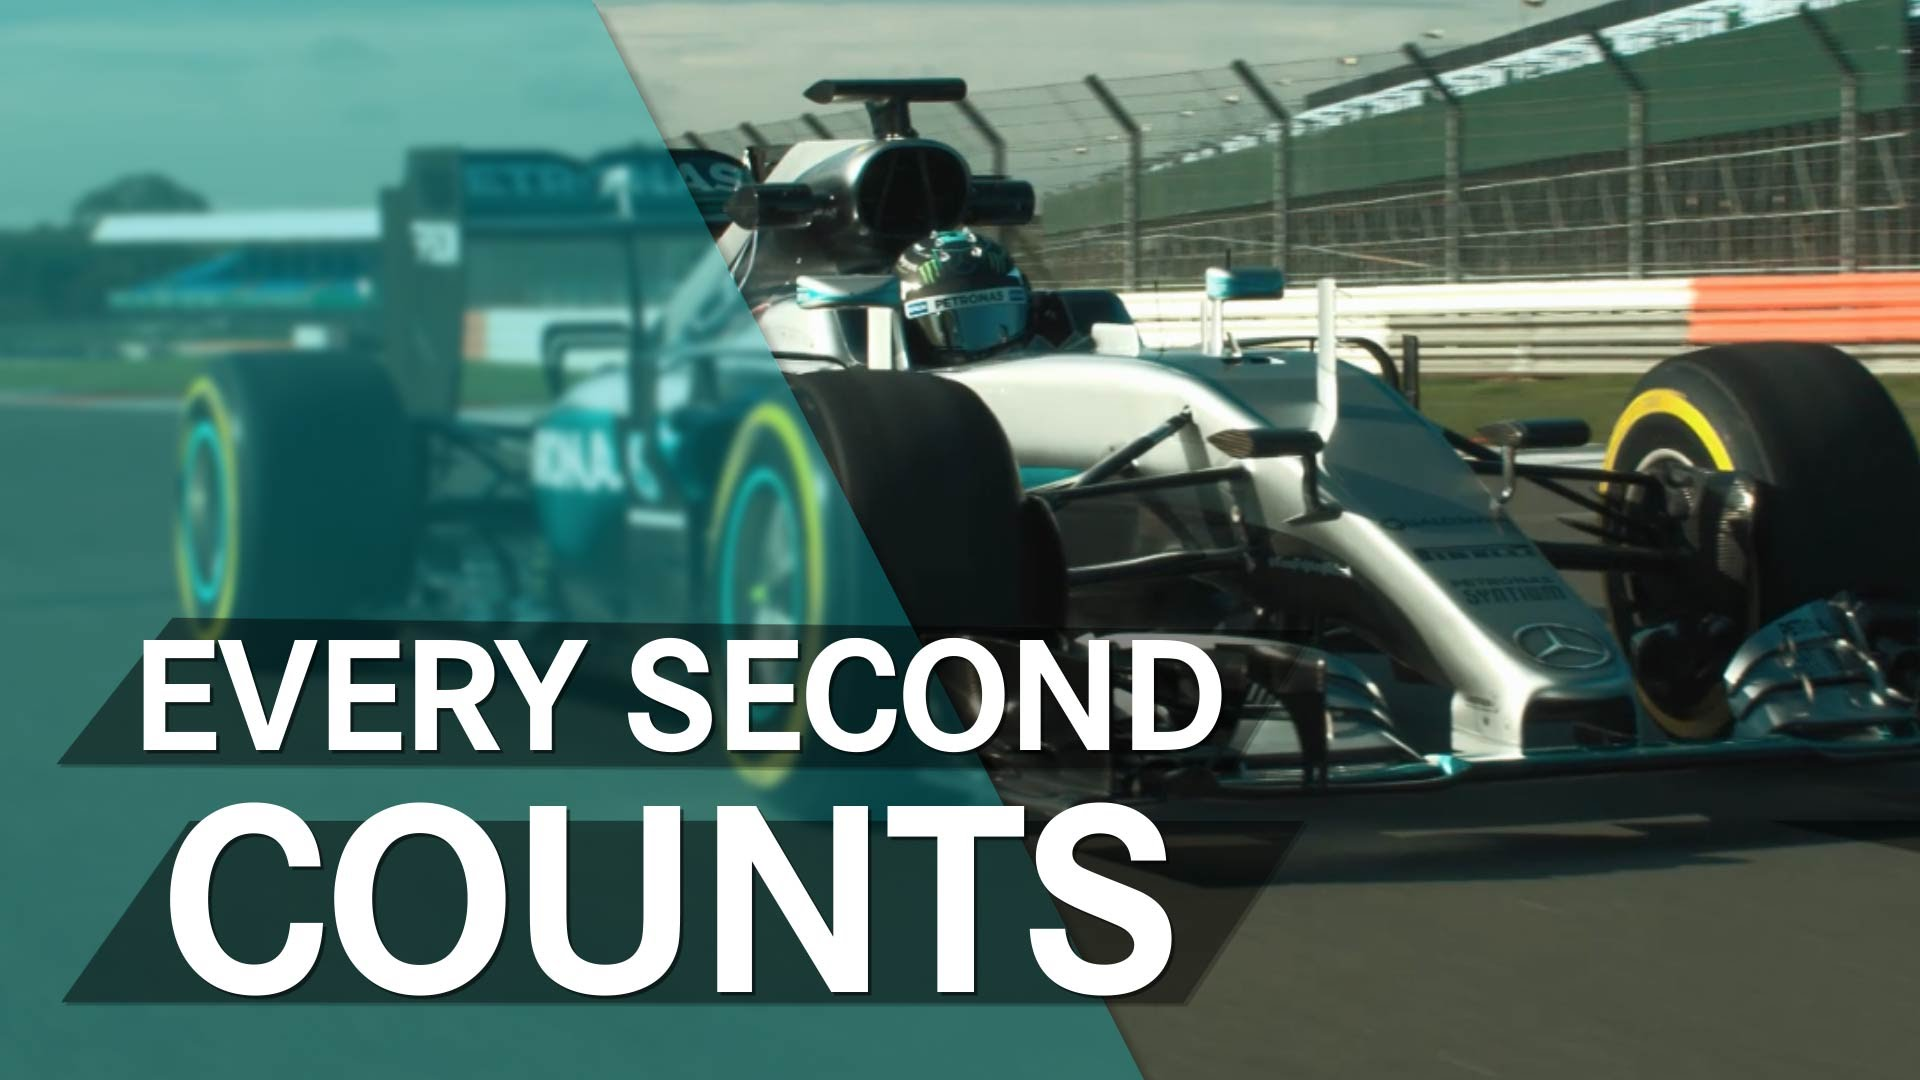 Mercedes-AMG Petronas F1 – For the Love of Racing